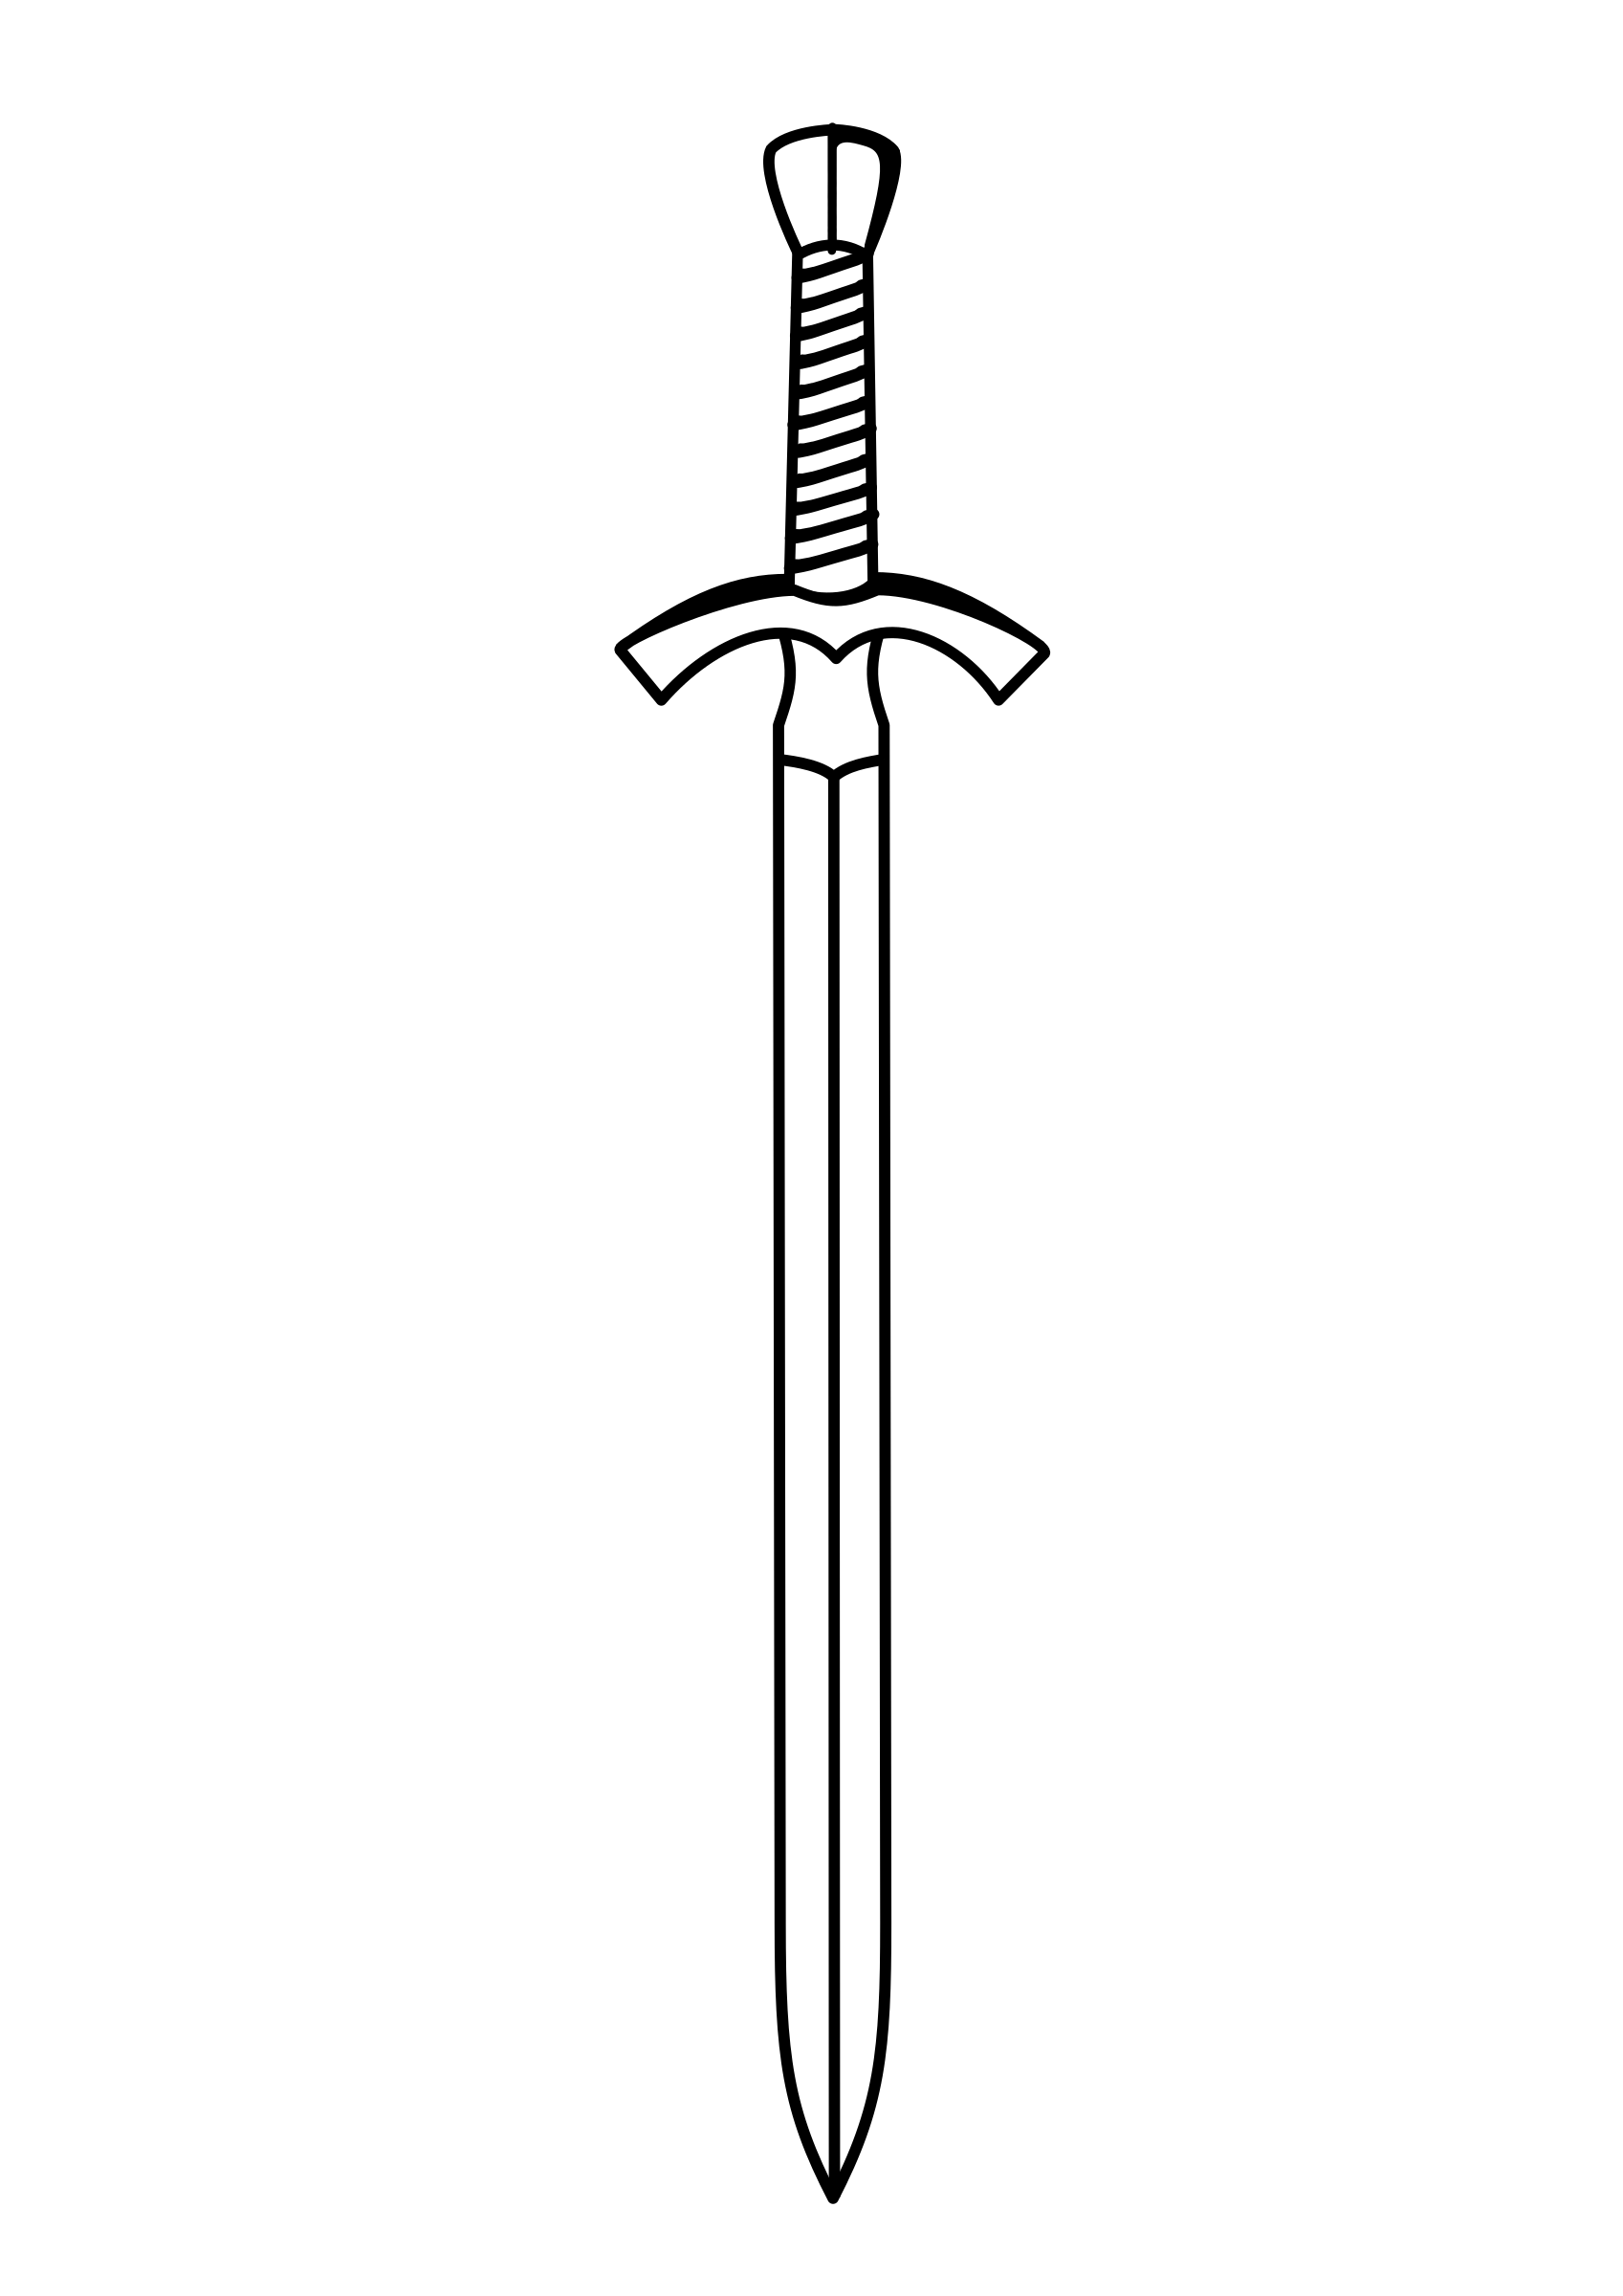 pin Weapon clipart double edged sword #13 - Double Edged Sword PNG